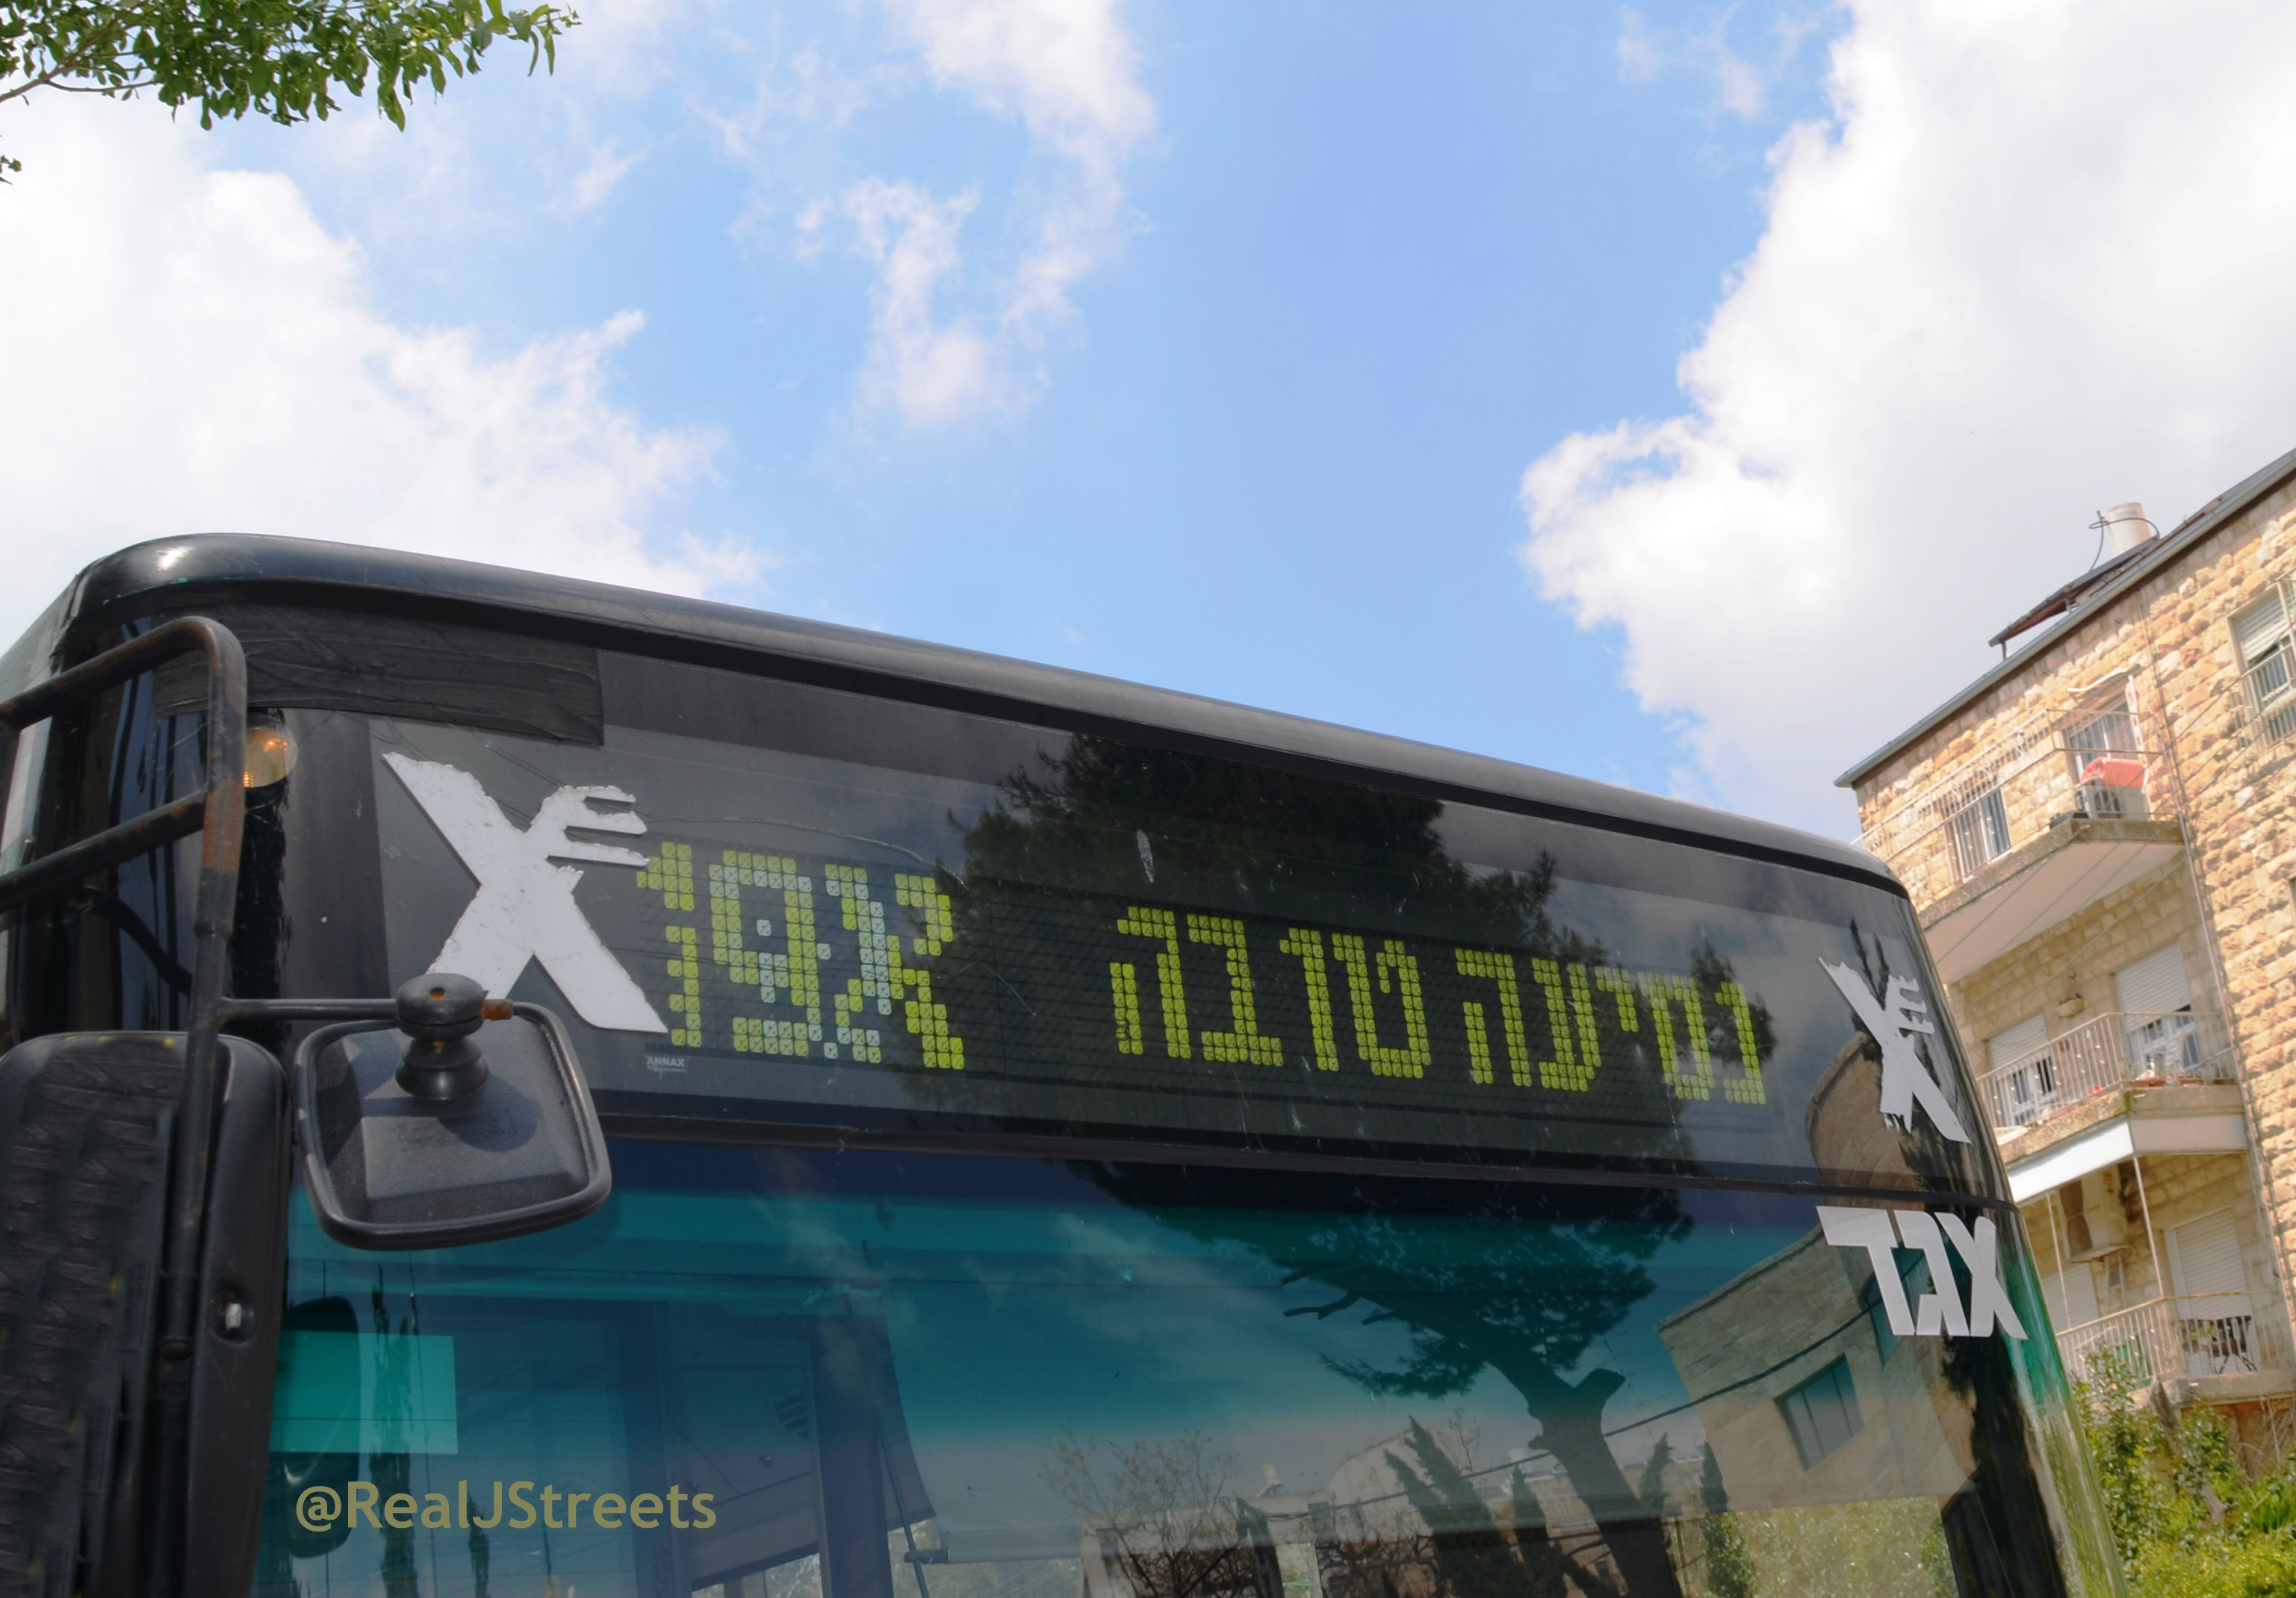 bus sign in Hebrew